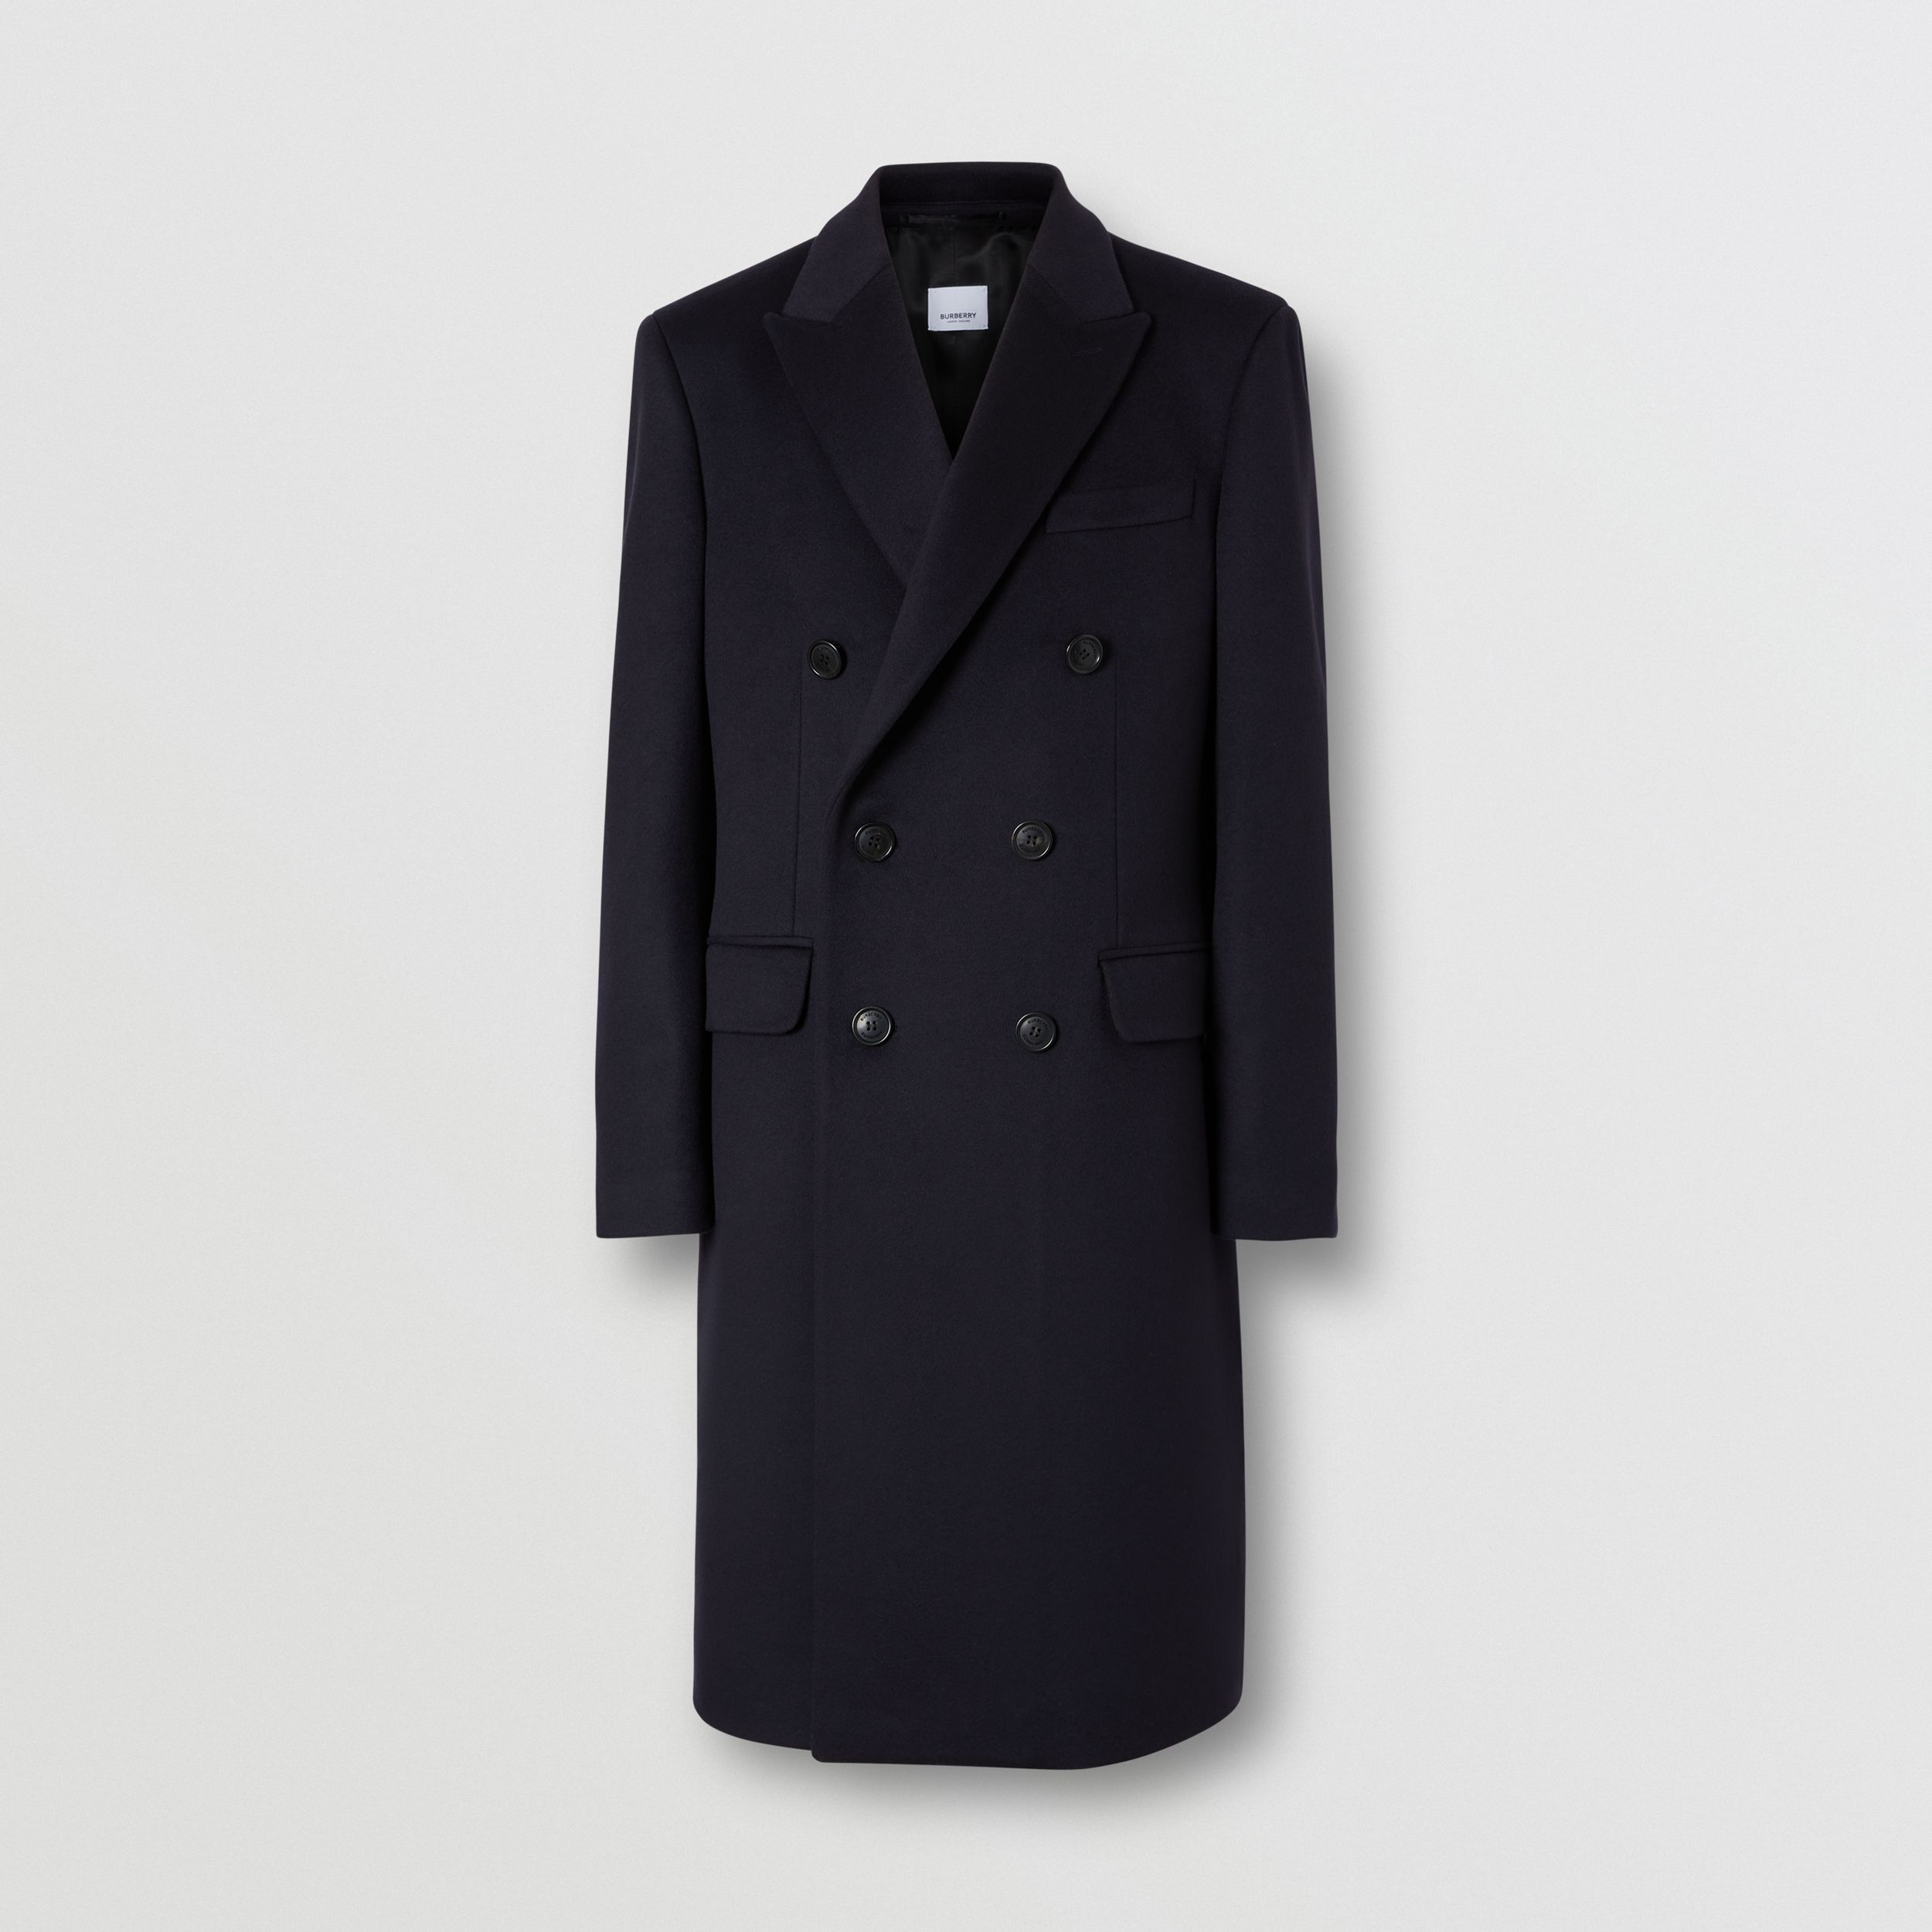 Wool Cashmere Tailored Coat in Navy - Men | Burberry - 4